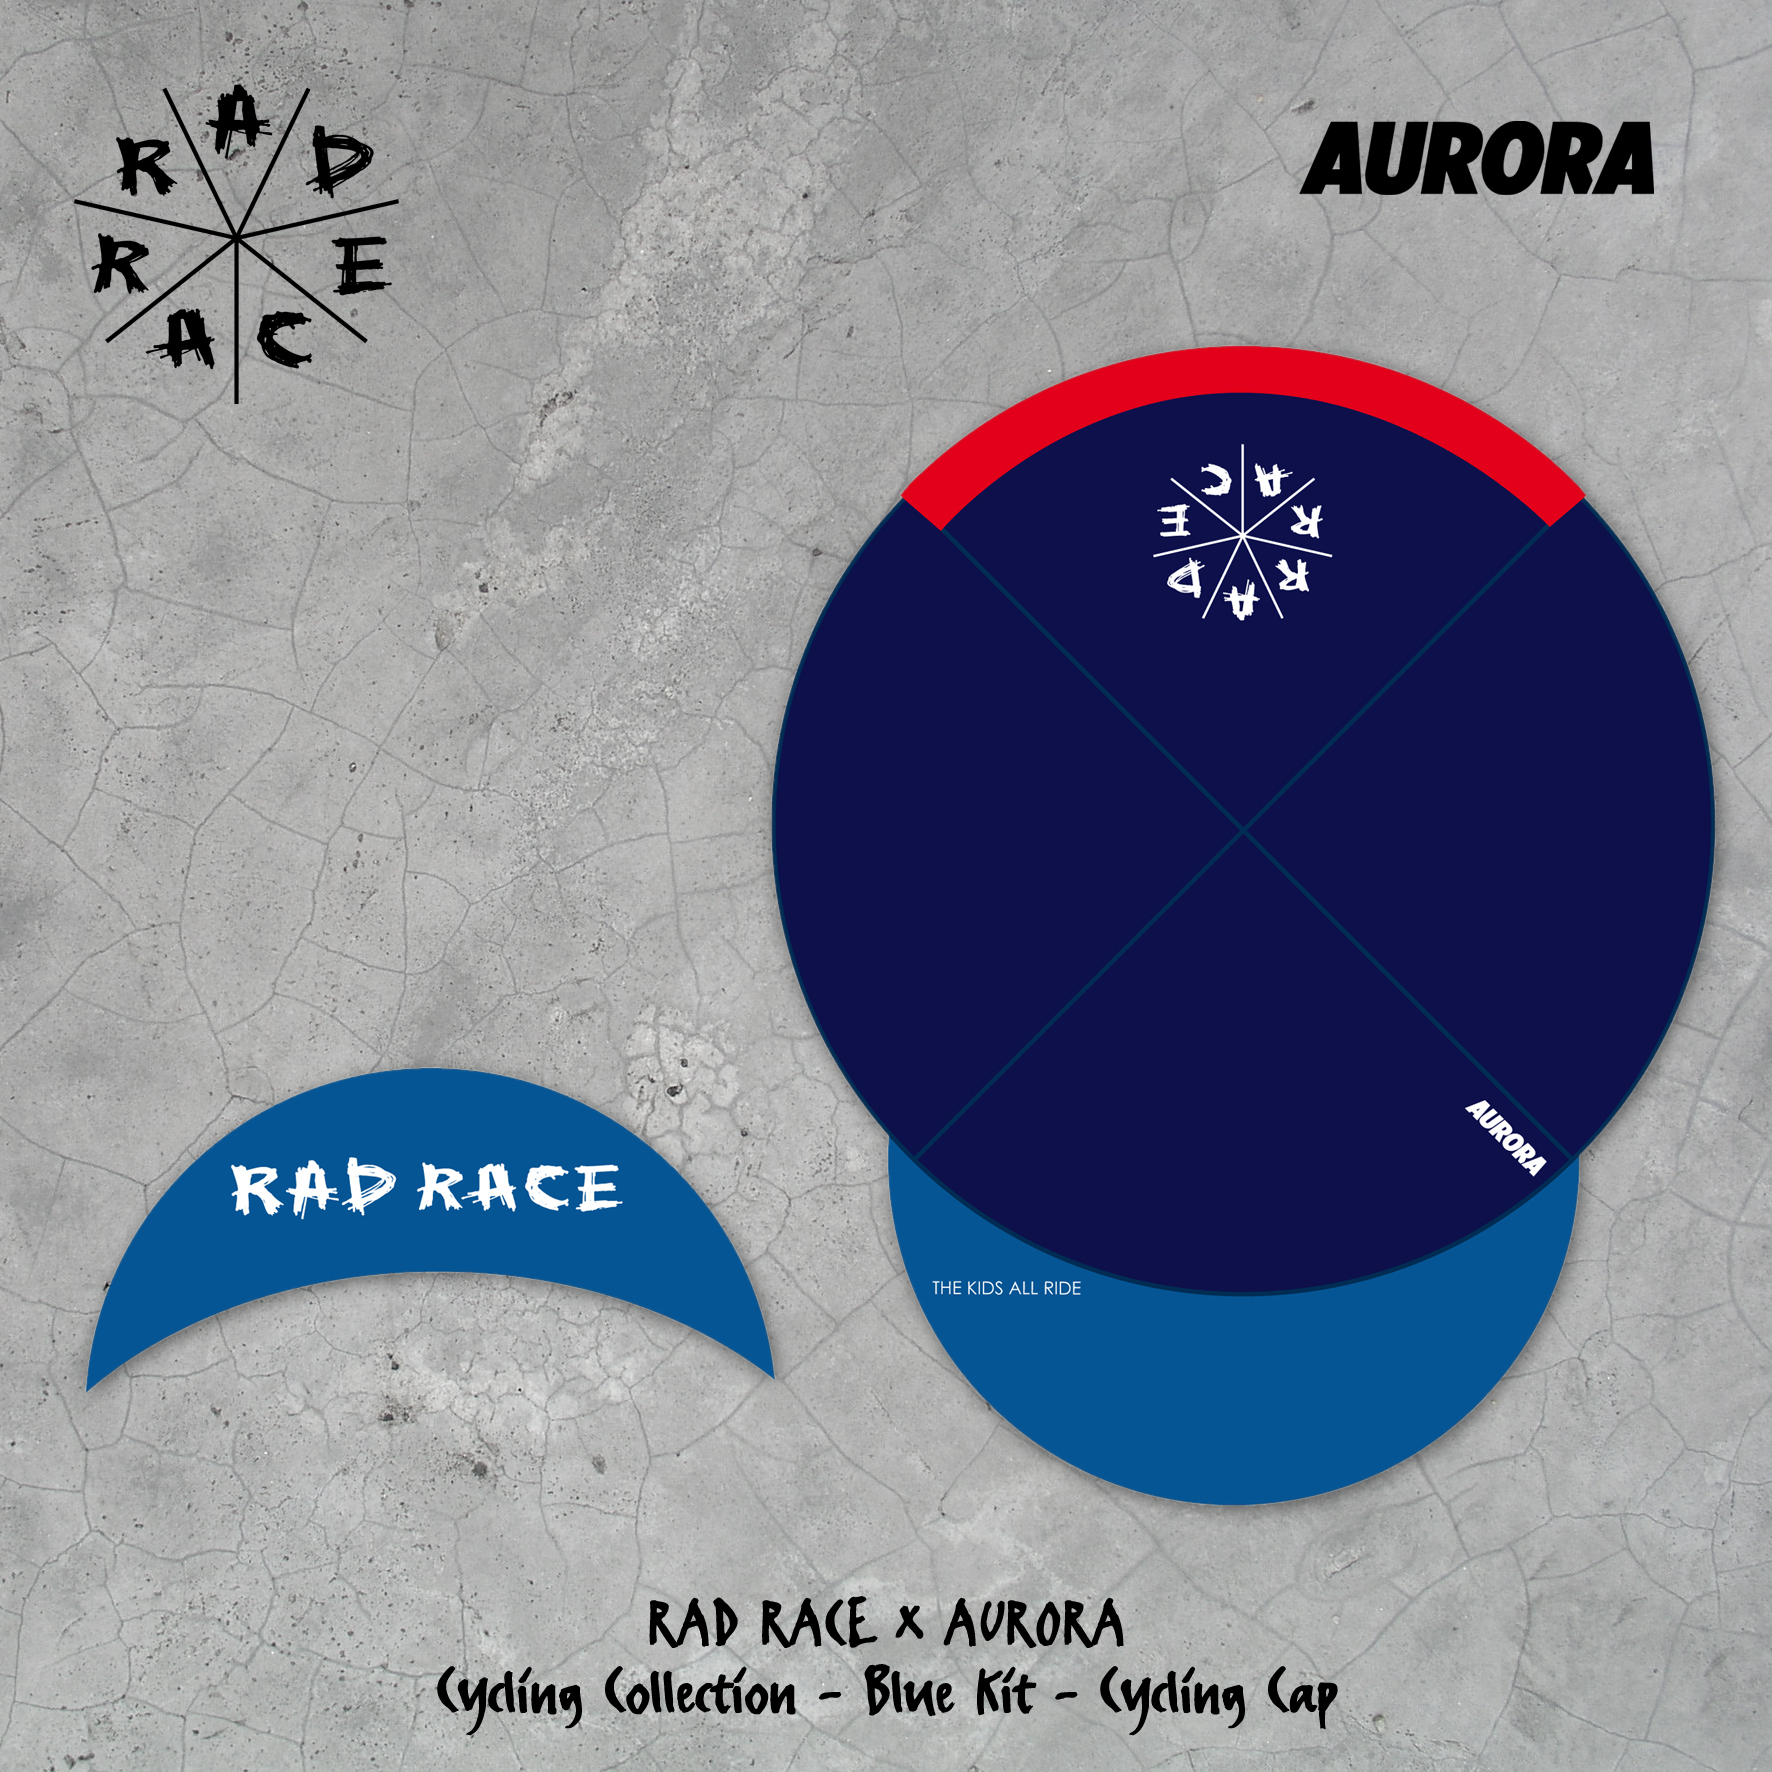 RAD RACE x AURORA Cycling Collection